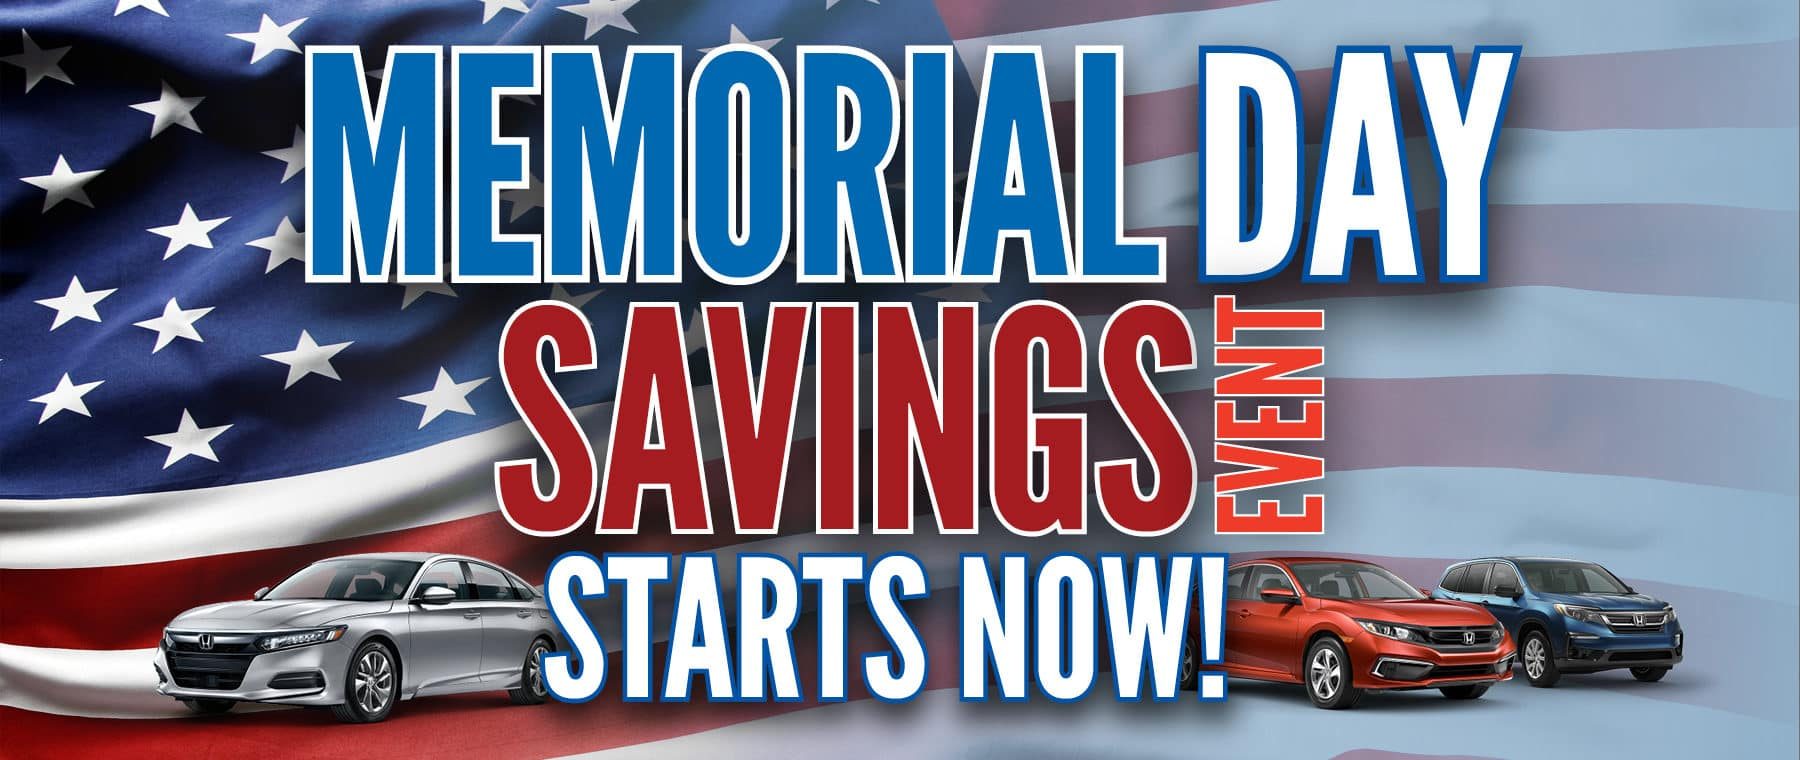 Memorial Day Savings Starts Now